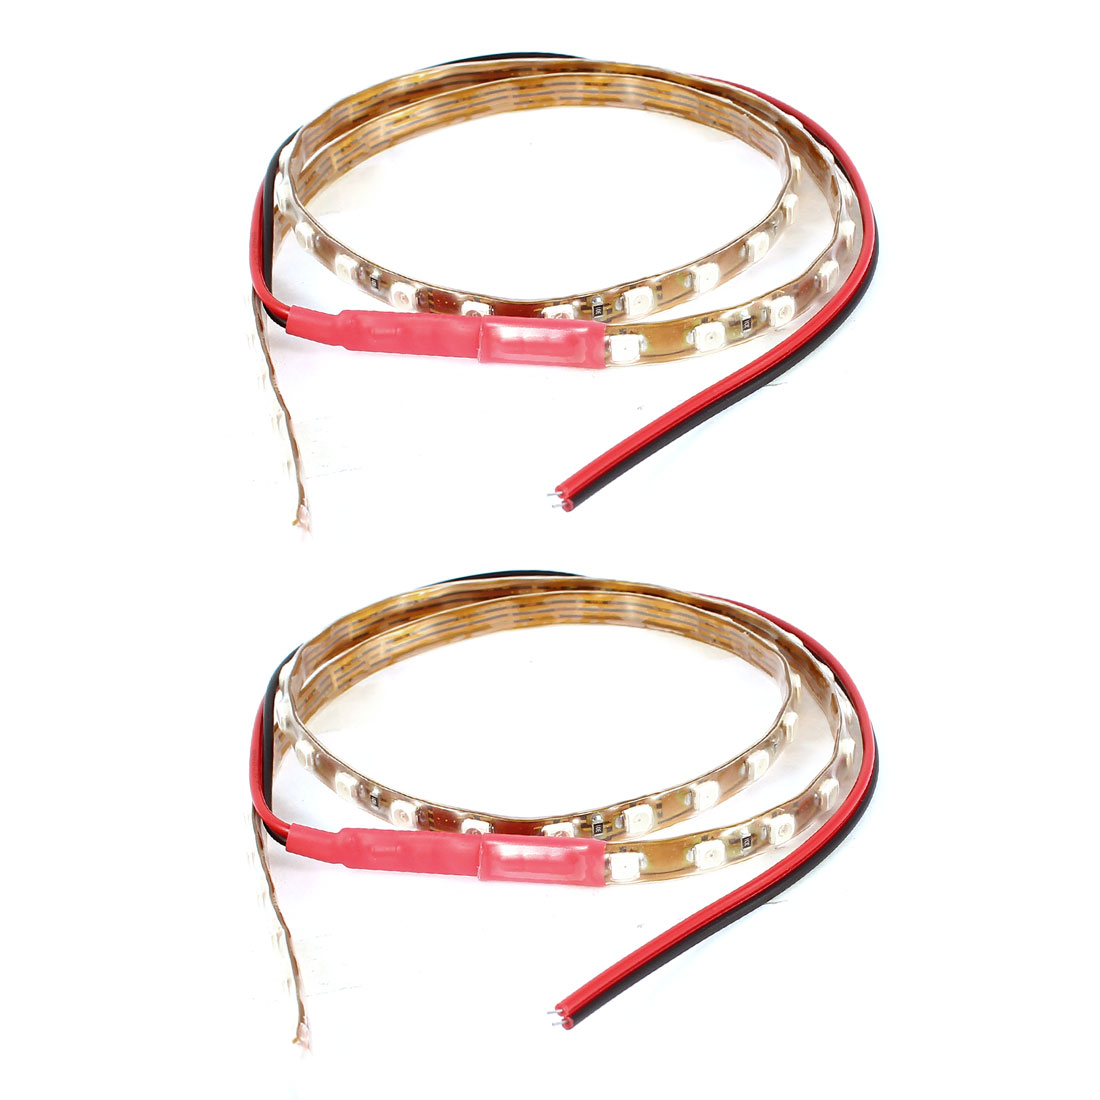 2 Pcs DC 12V Car Red 1210 SMD 45 LED Flexible Strip Light Lamp Decor 45CM Internal